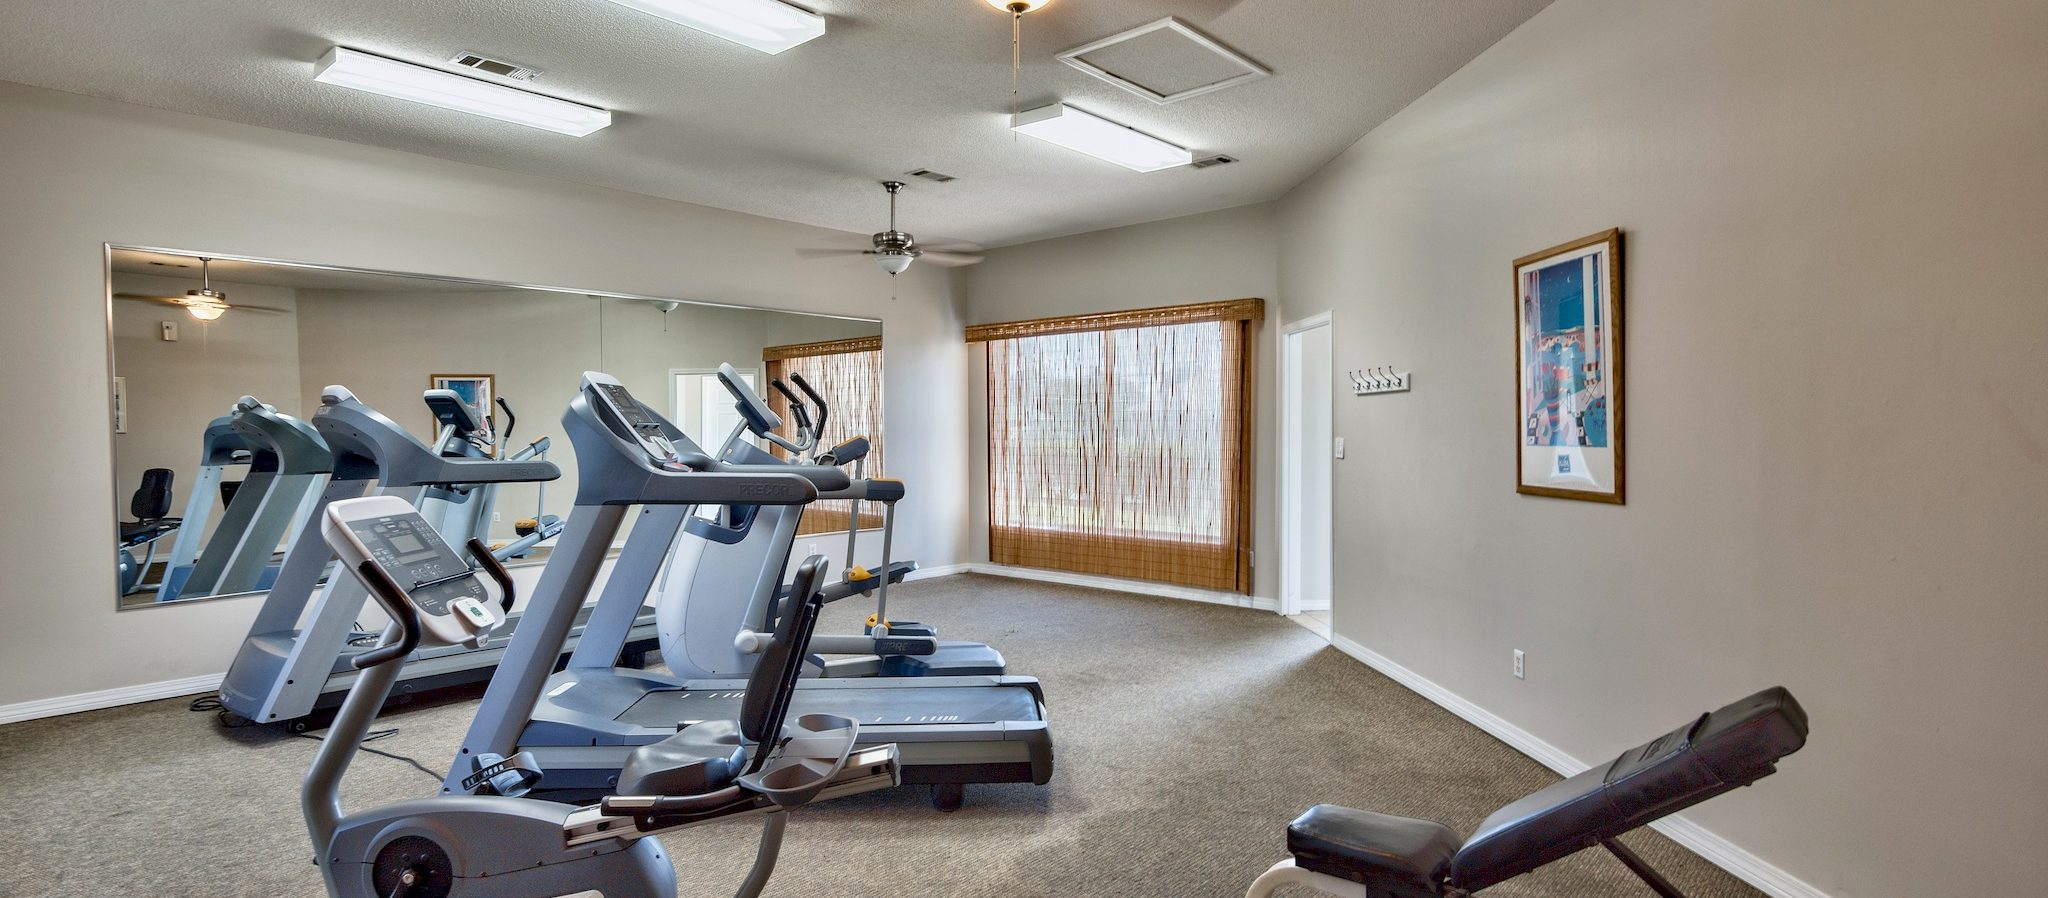 Another view of the fitness center.